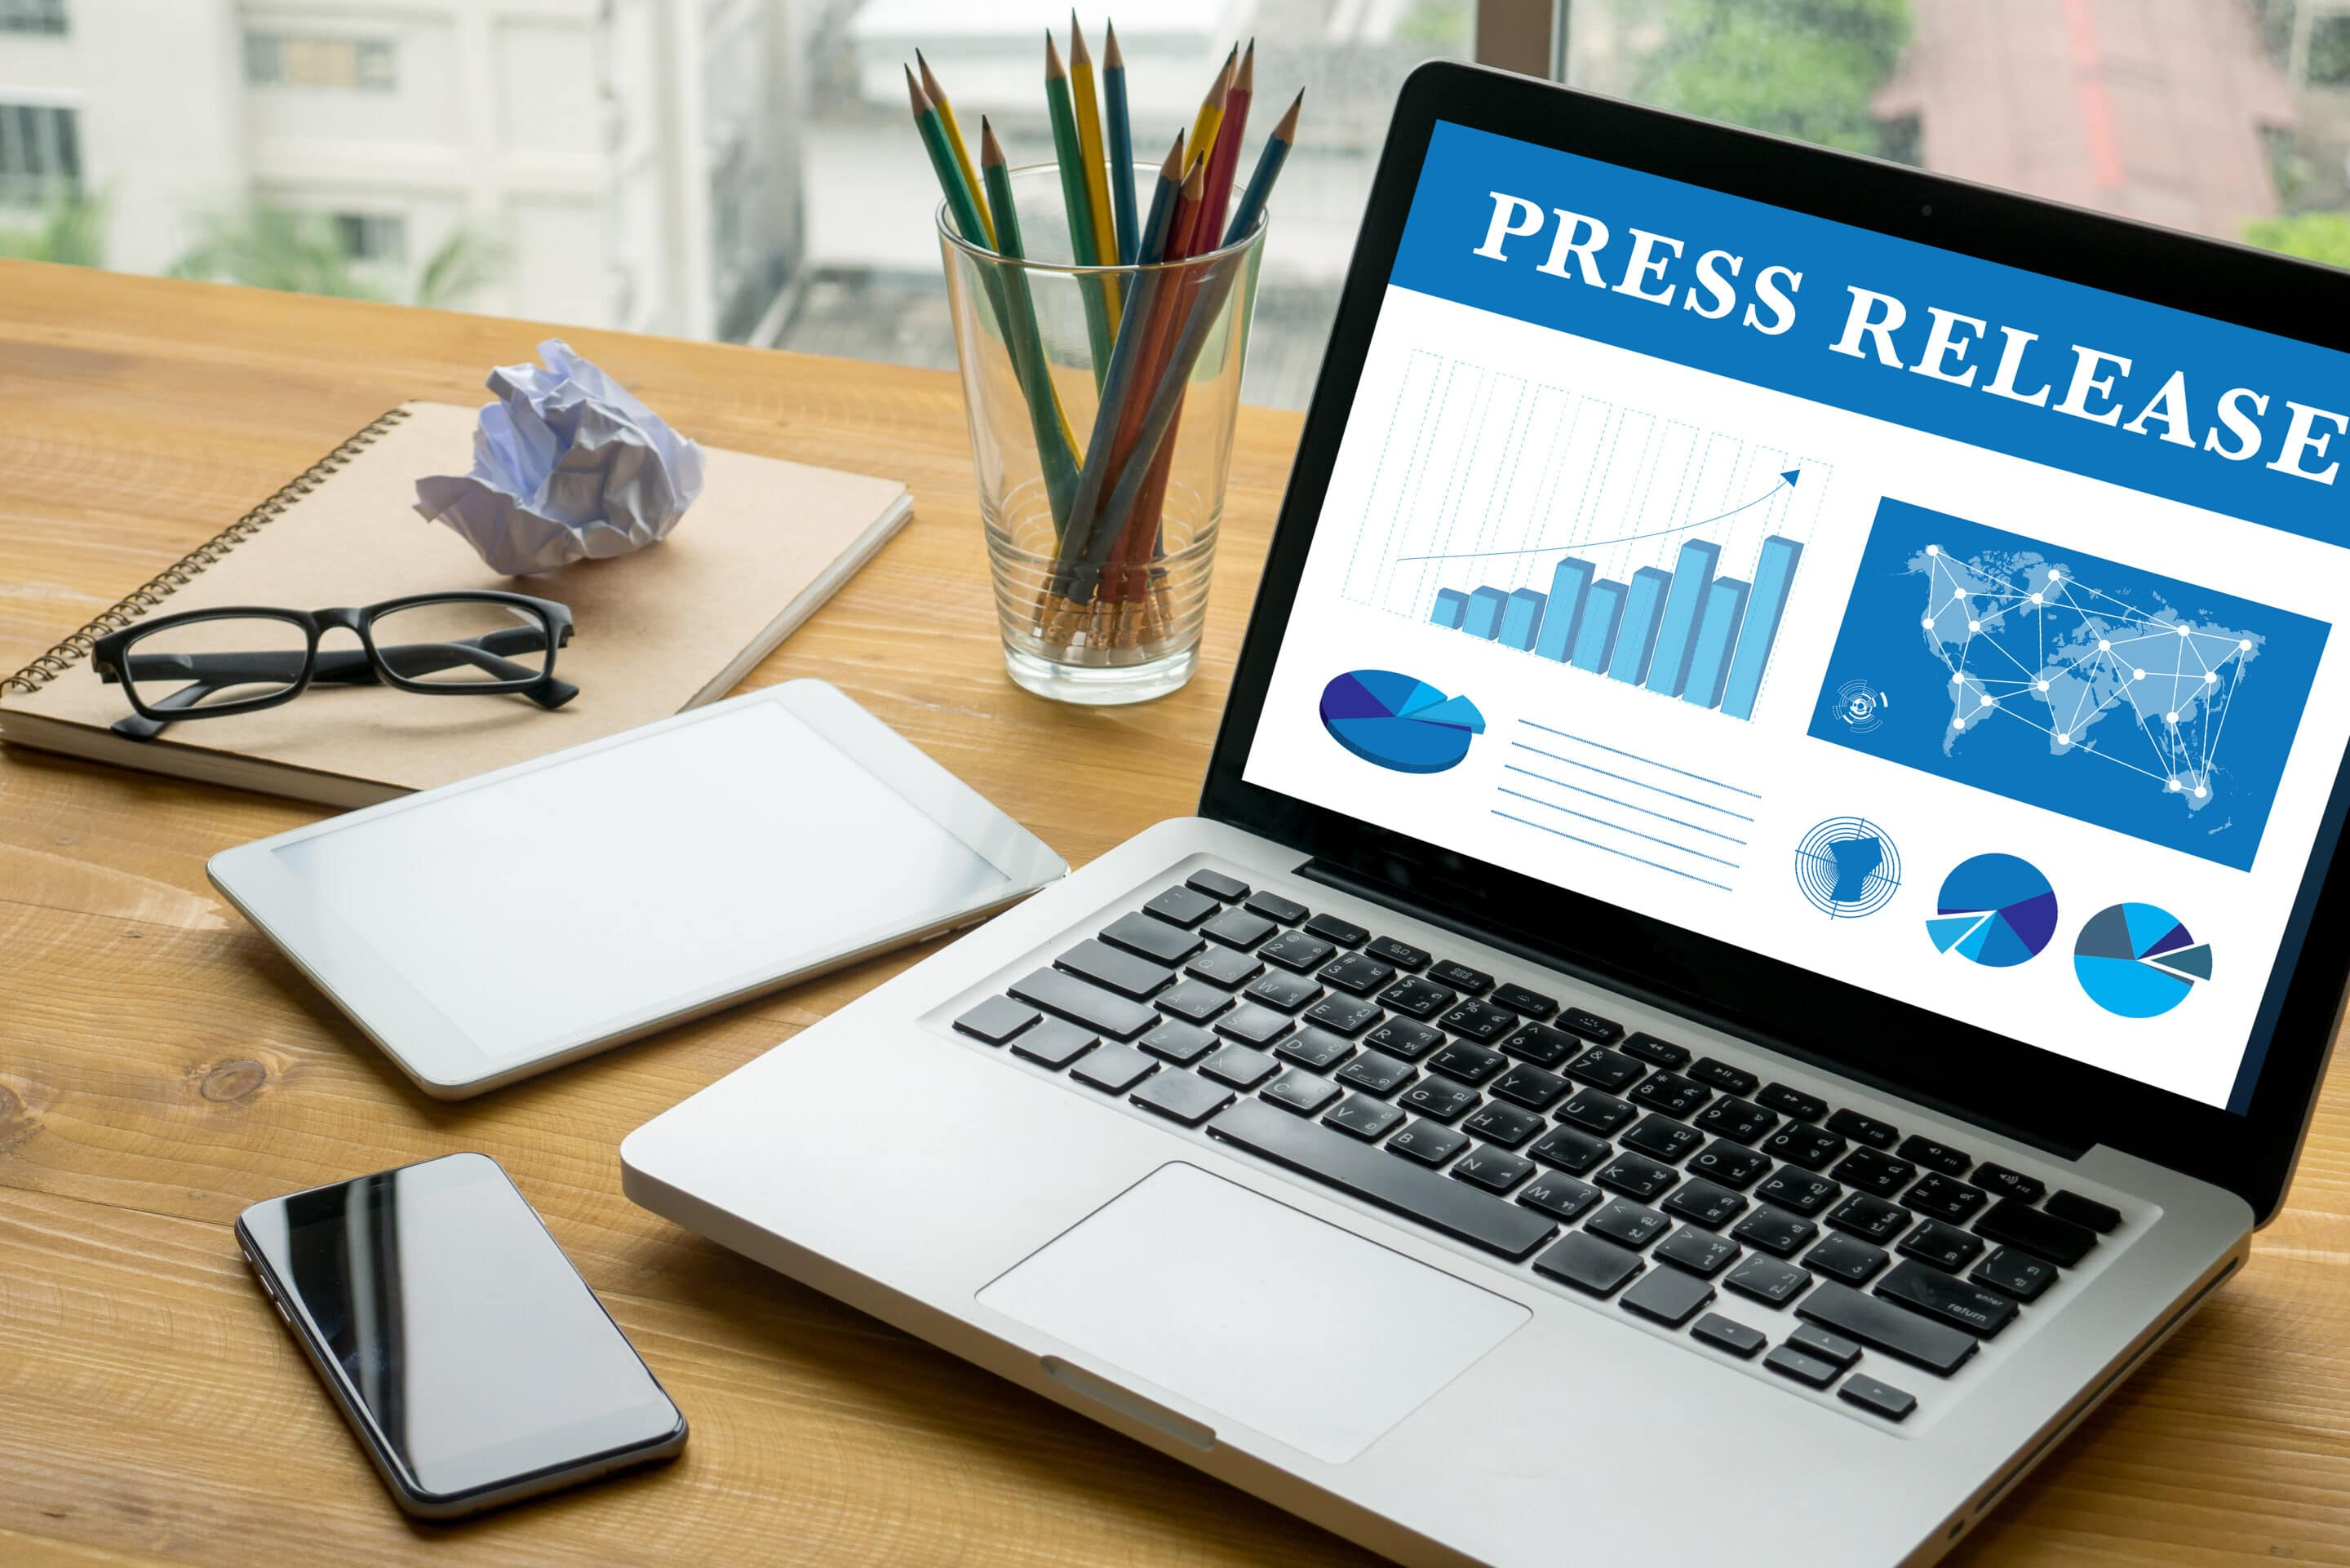 Five Reasons Press Releases Are Important And How To Write Them